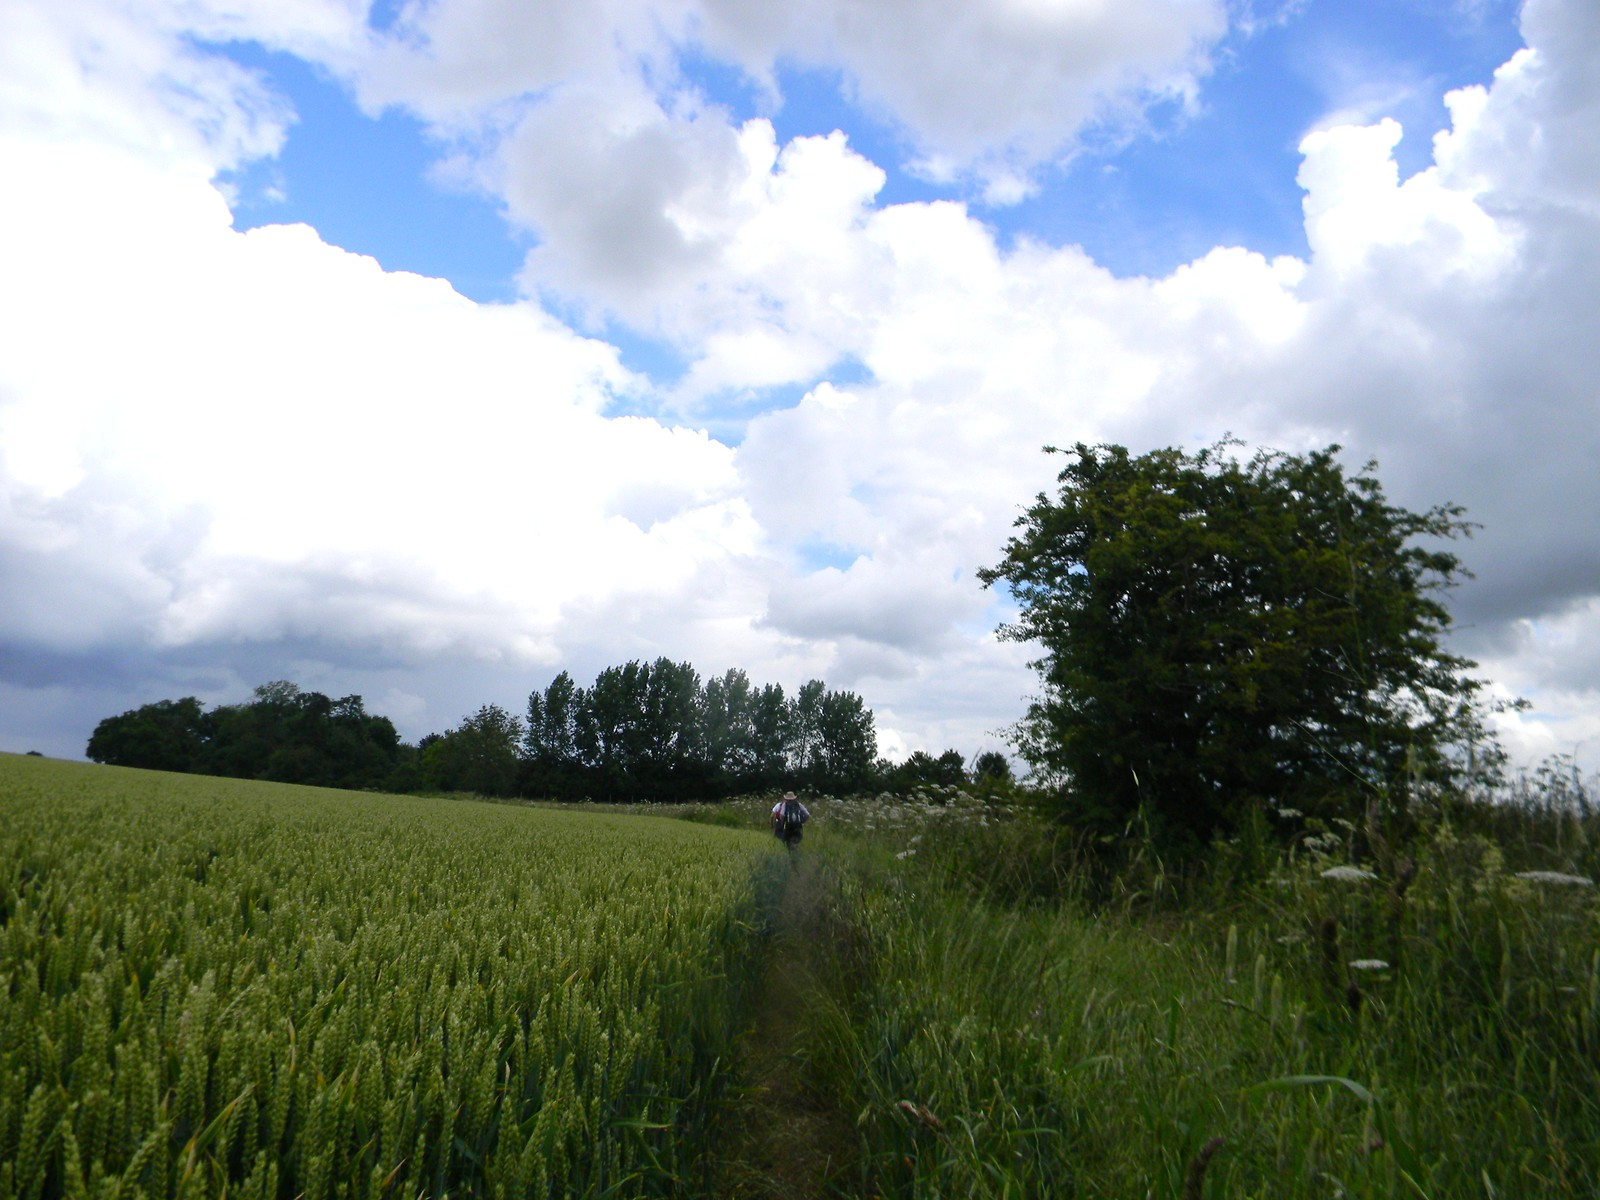 Wheatfield Sawbridgeworth to Bishops Stortford